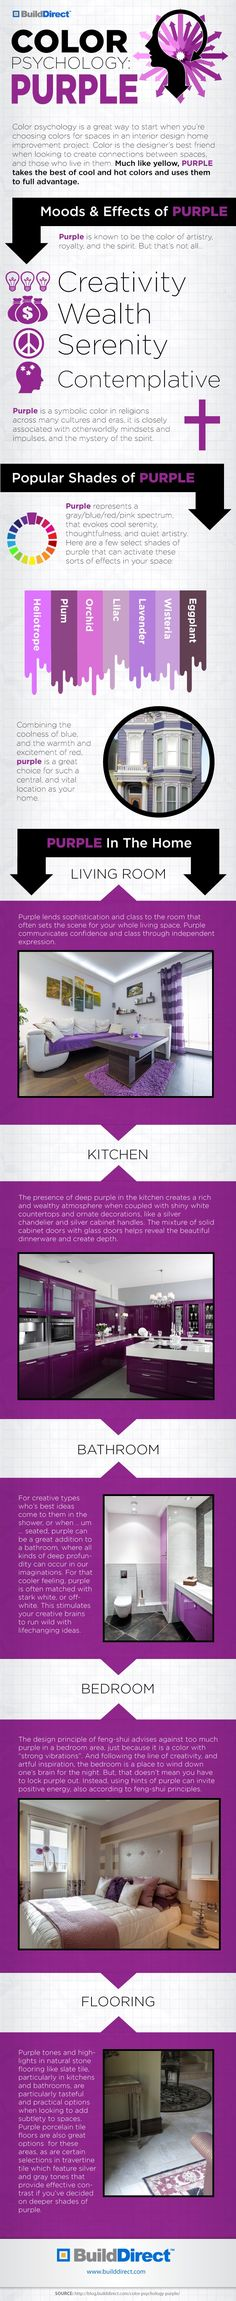 Color Psychology Purple copy Emotional Interior Design: Using Purple